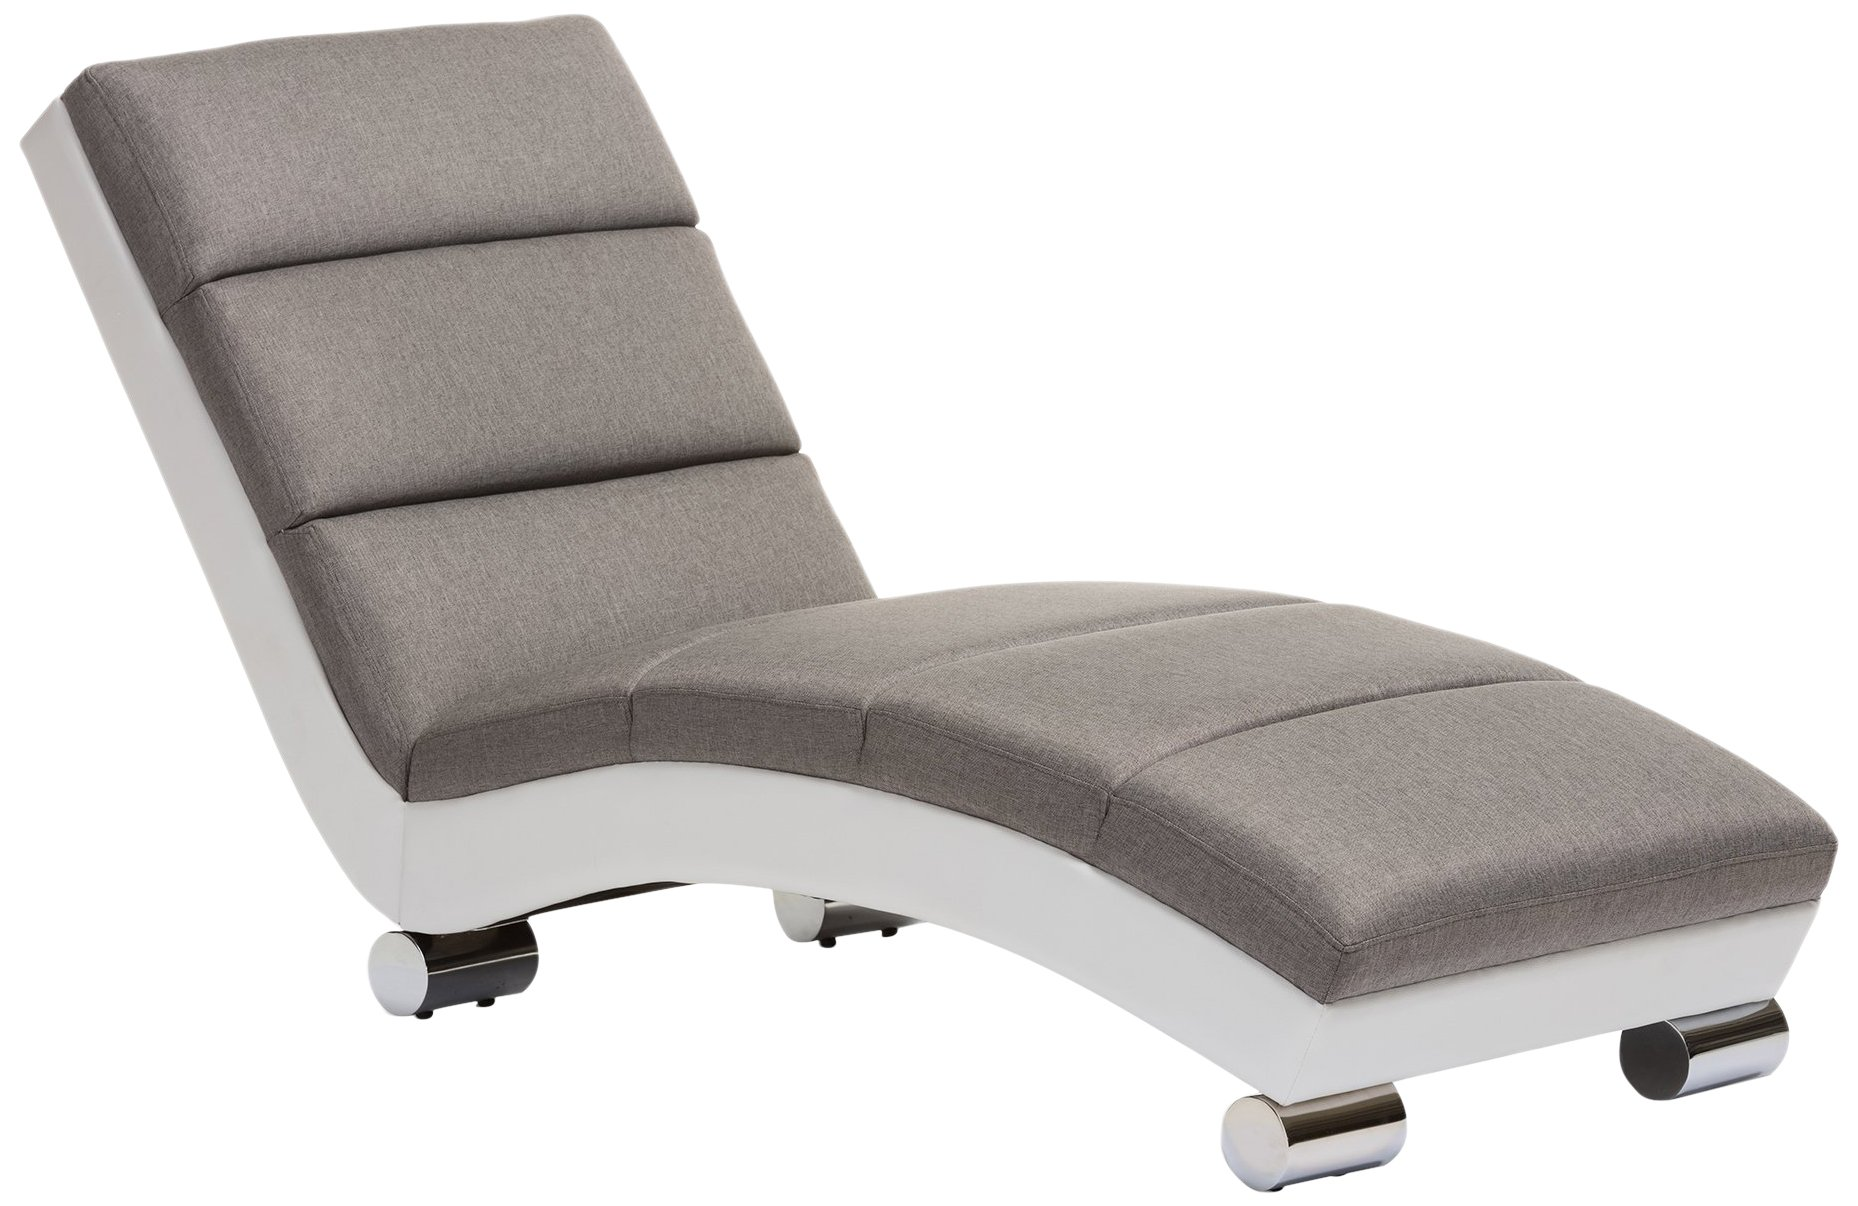 Baxton Studio Percy Modern Contemporary Grey Fabric and White Faux Leather Upholstered Chaise Lounge, Medium, Gray by Baxton Studio